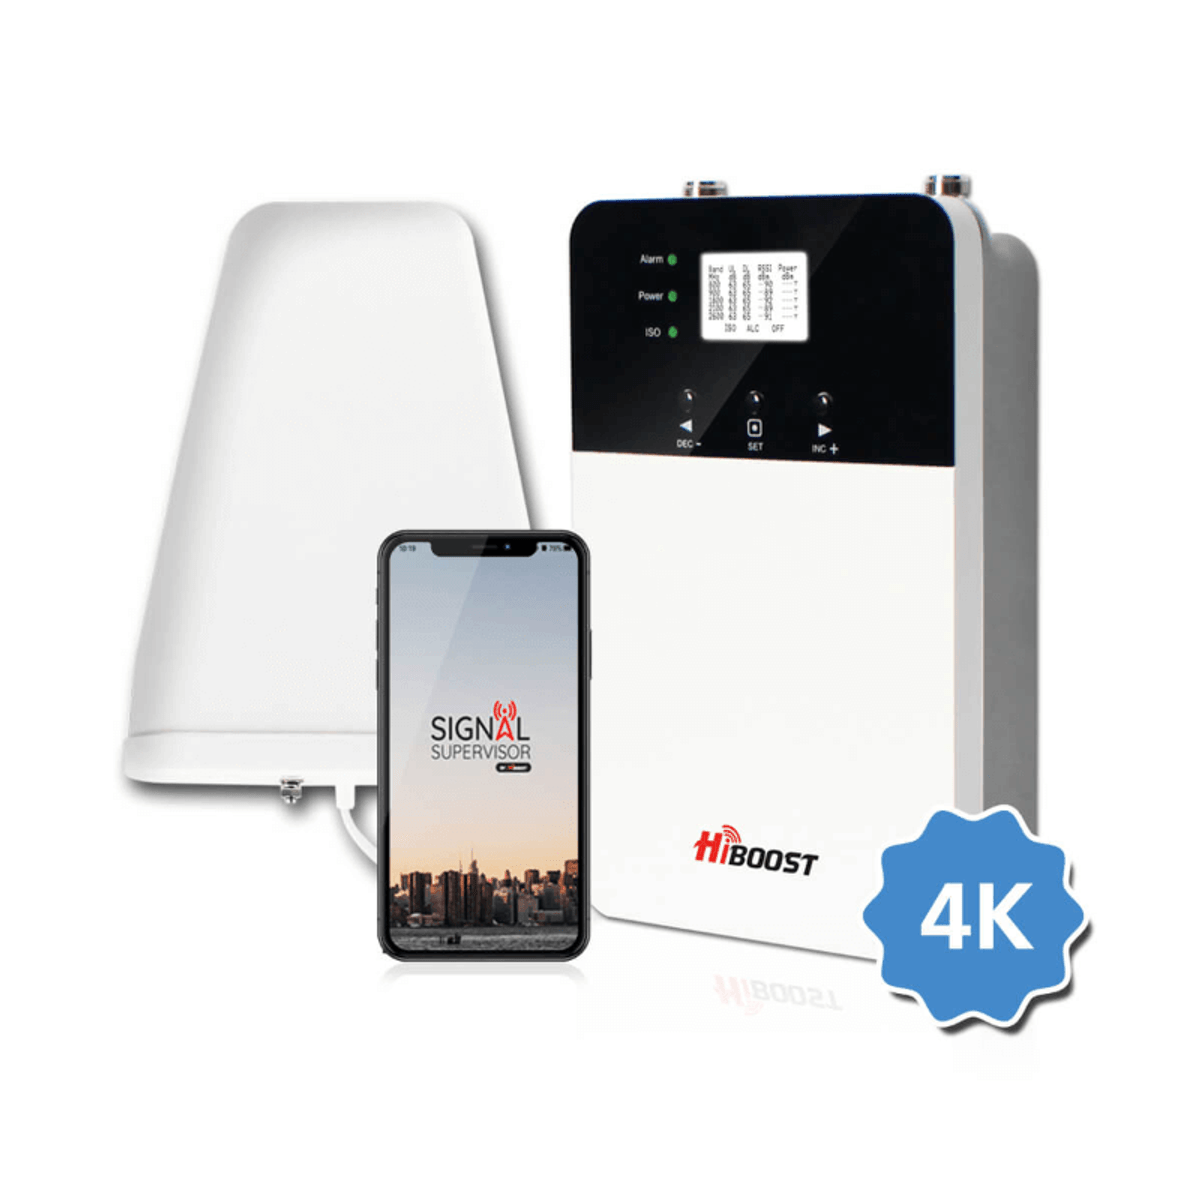 HiBoost Home 4K Plus  All-In-One Signal Booster Kit  With Yagi Panel Outdoor Antenna